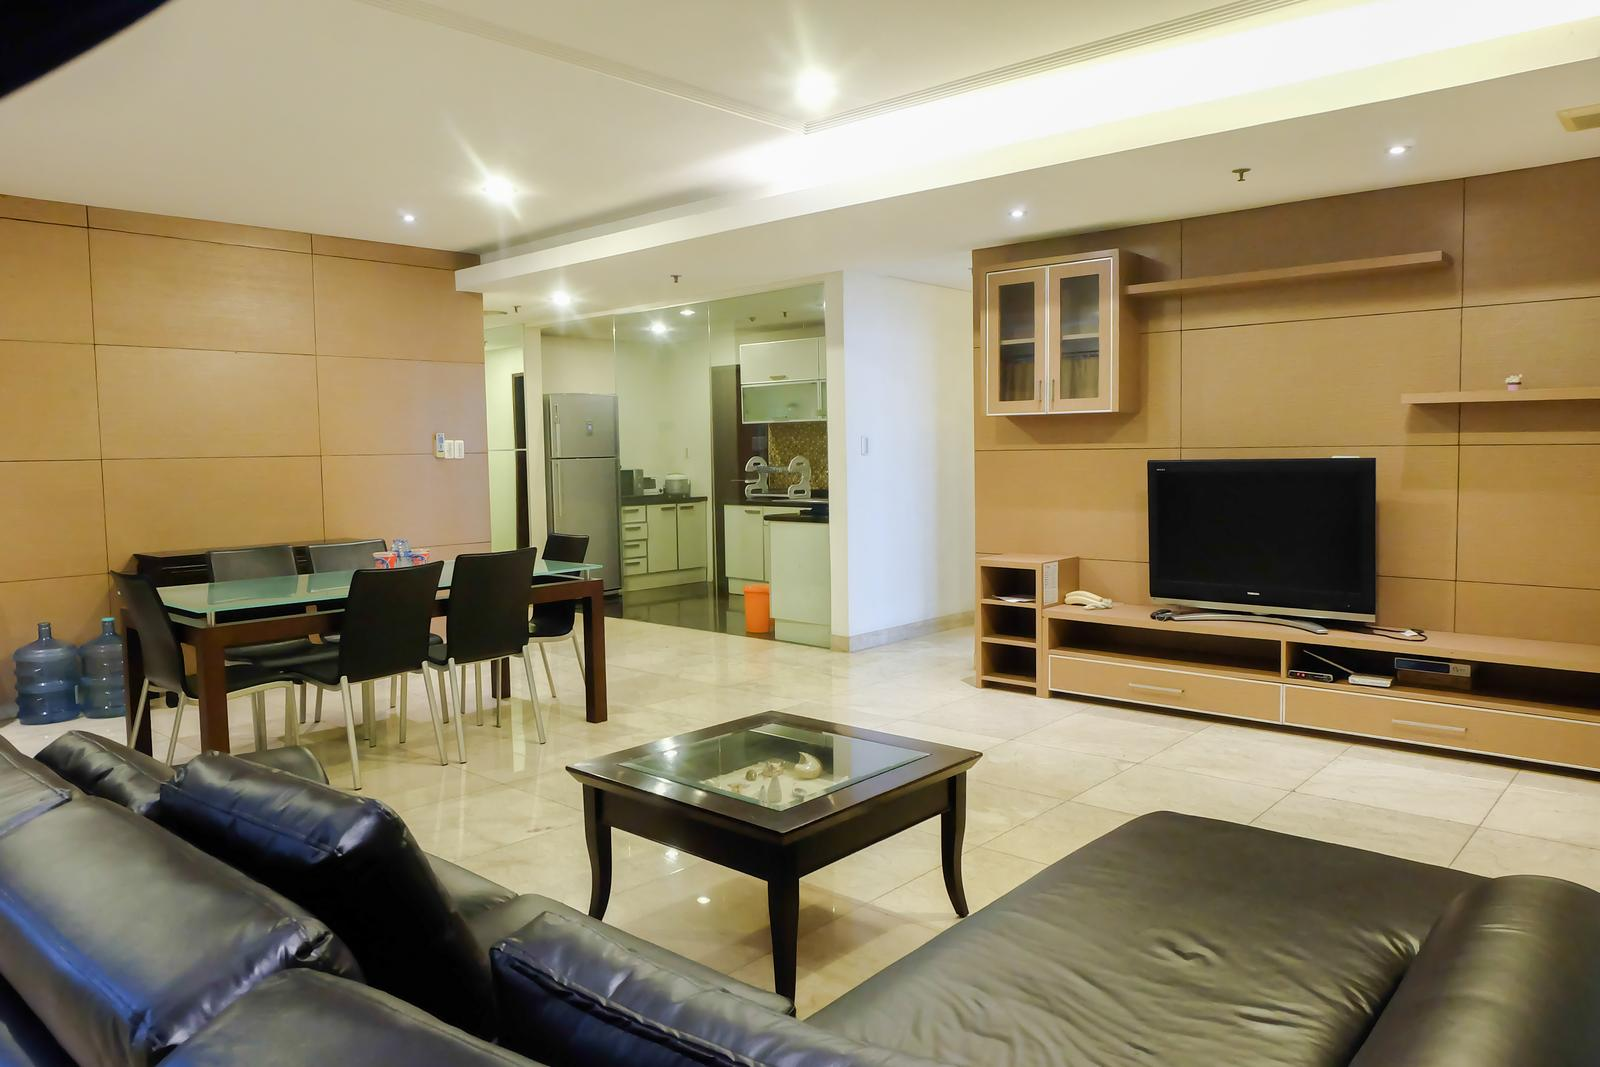 Park Royale Apartment Gatot Subroto - Spacious 2 BR Apartment Park Royale By Travelio